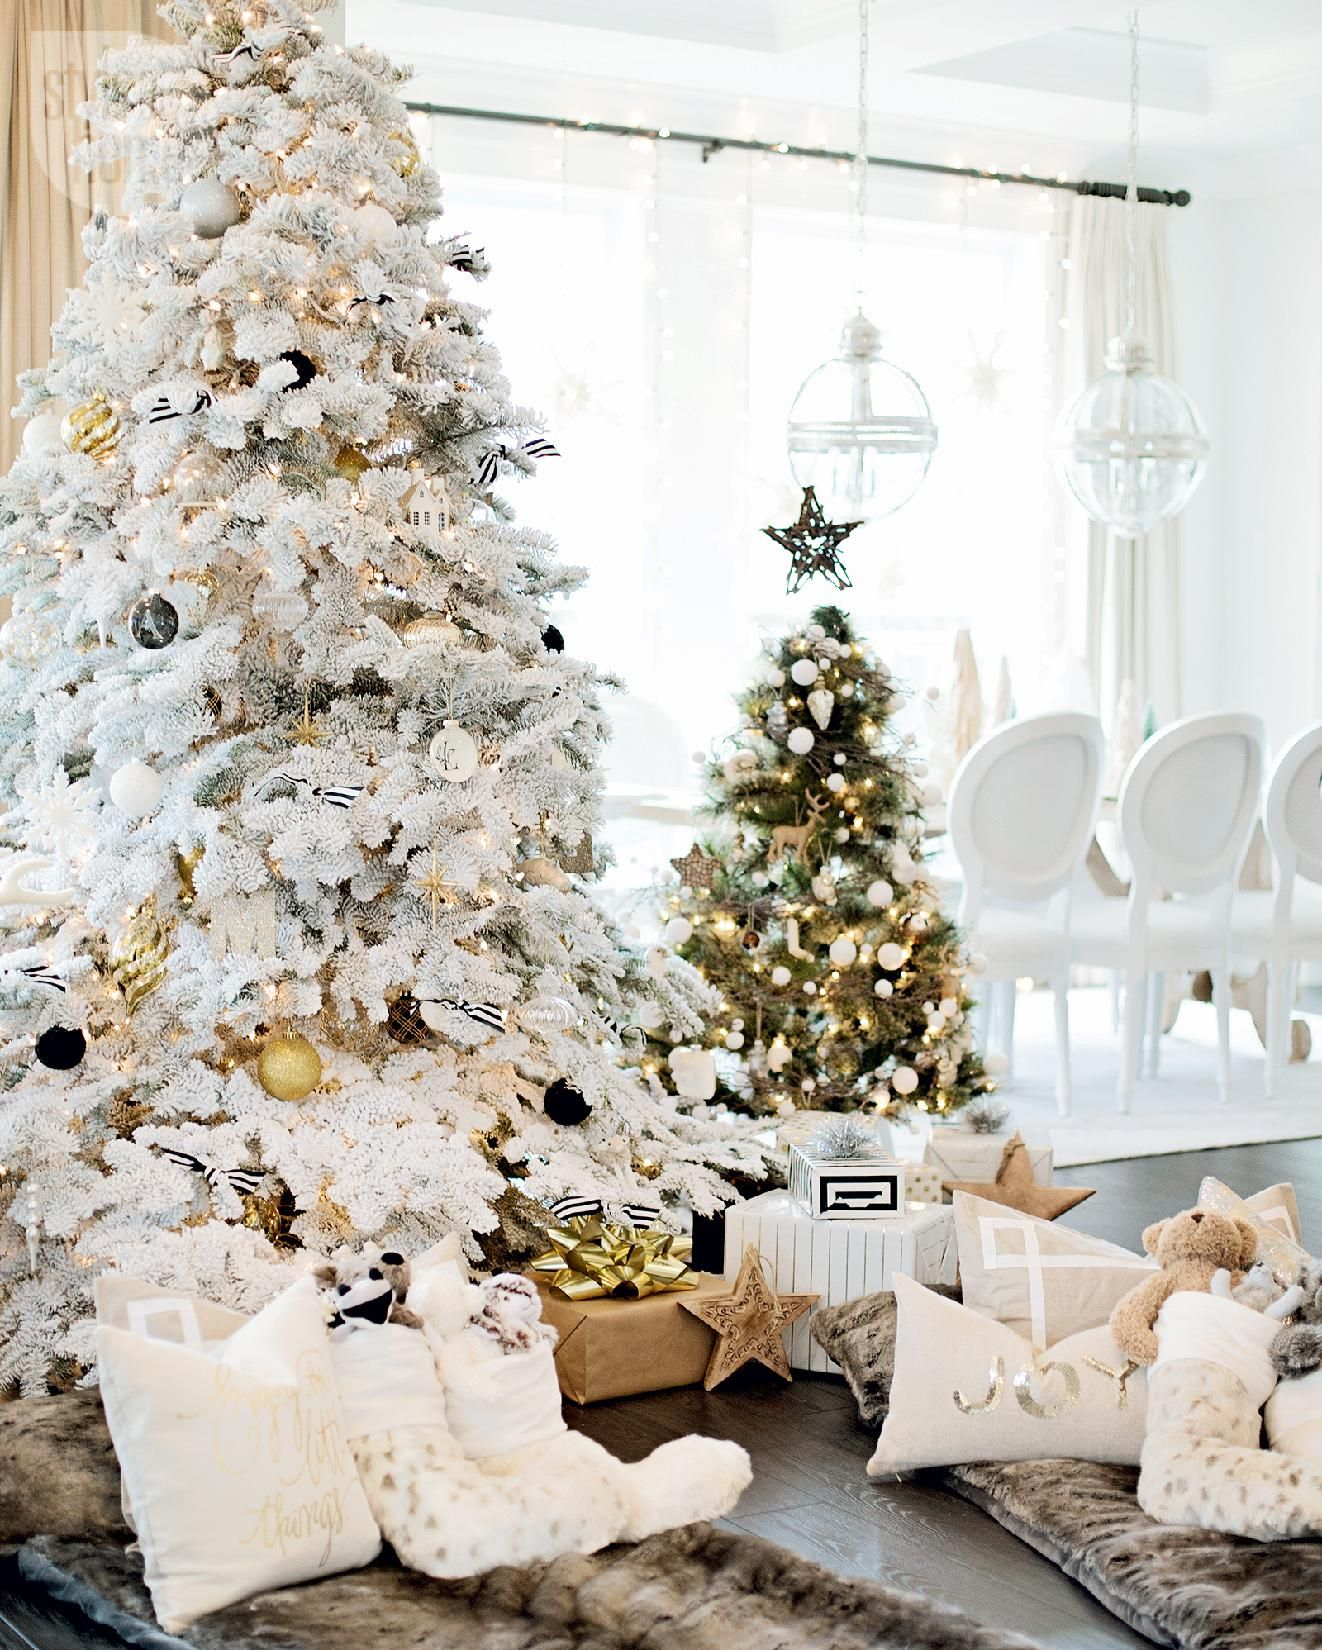 Michael Buble Weihnachten.Michael Buble Take Us Inside His Stylish Holiday Home Christmas